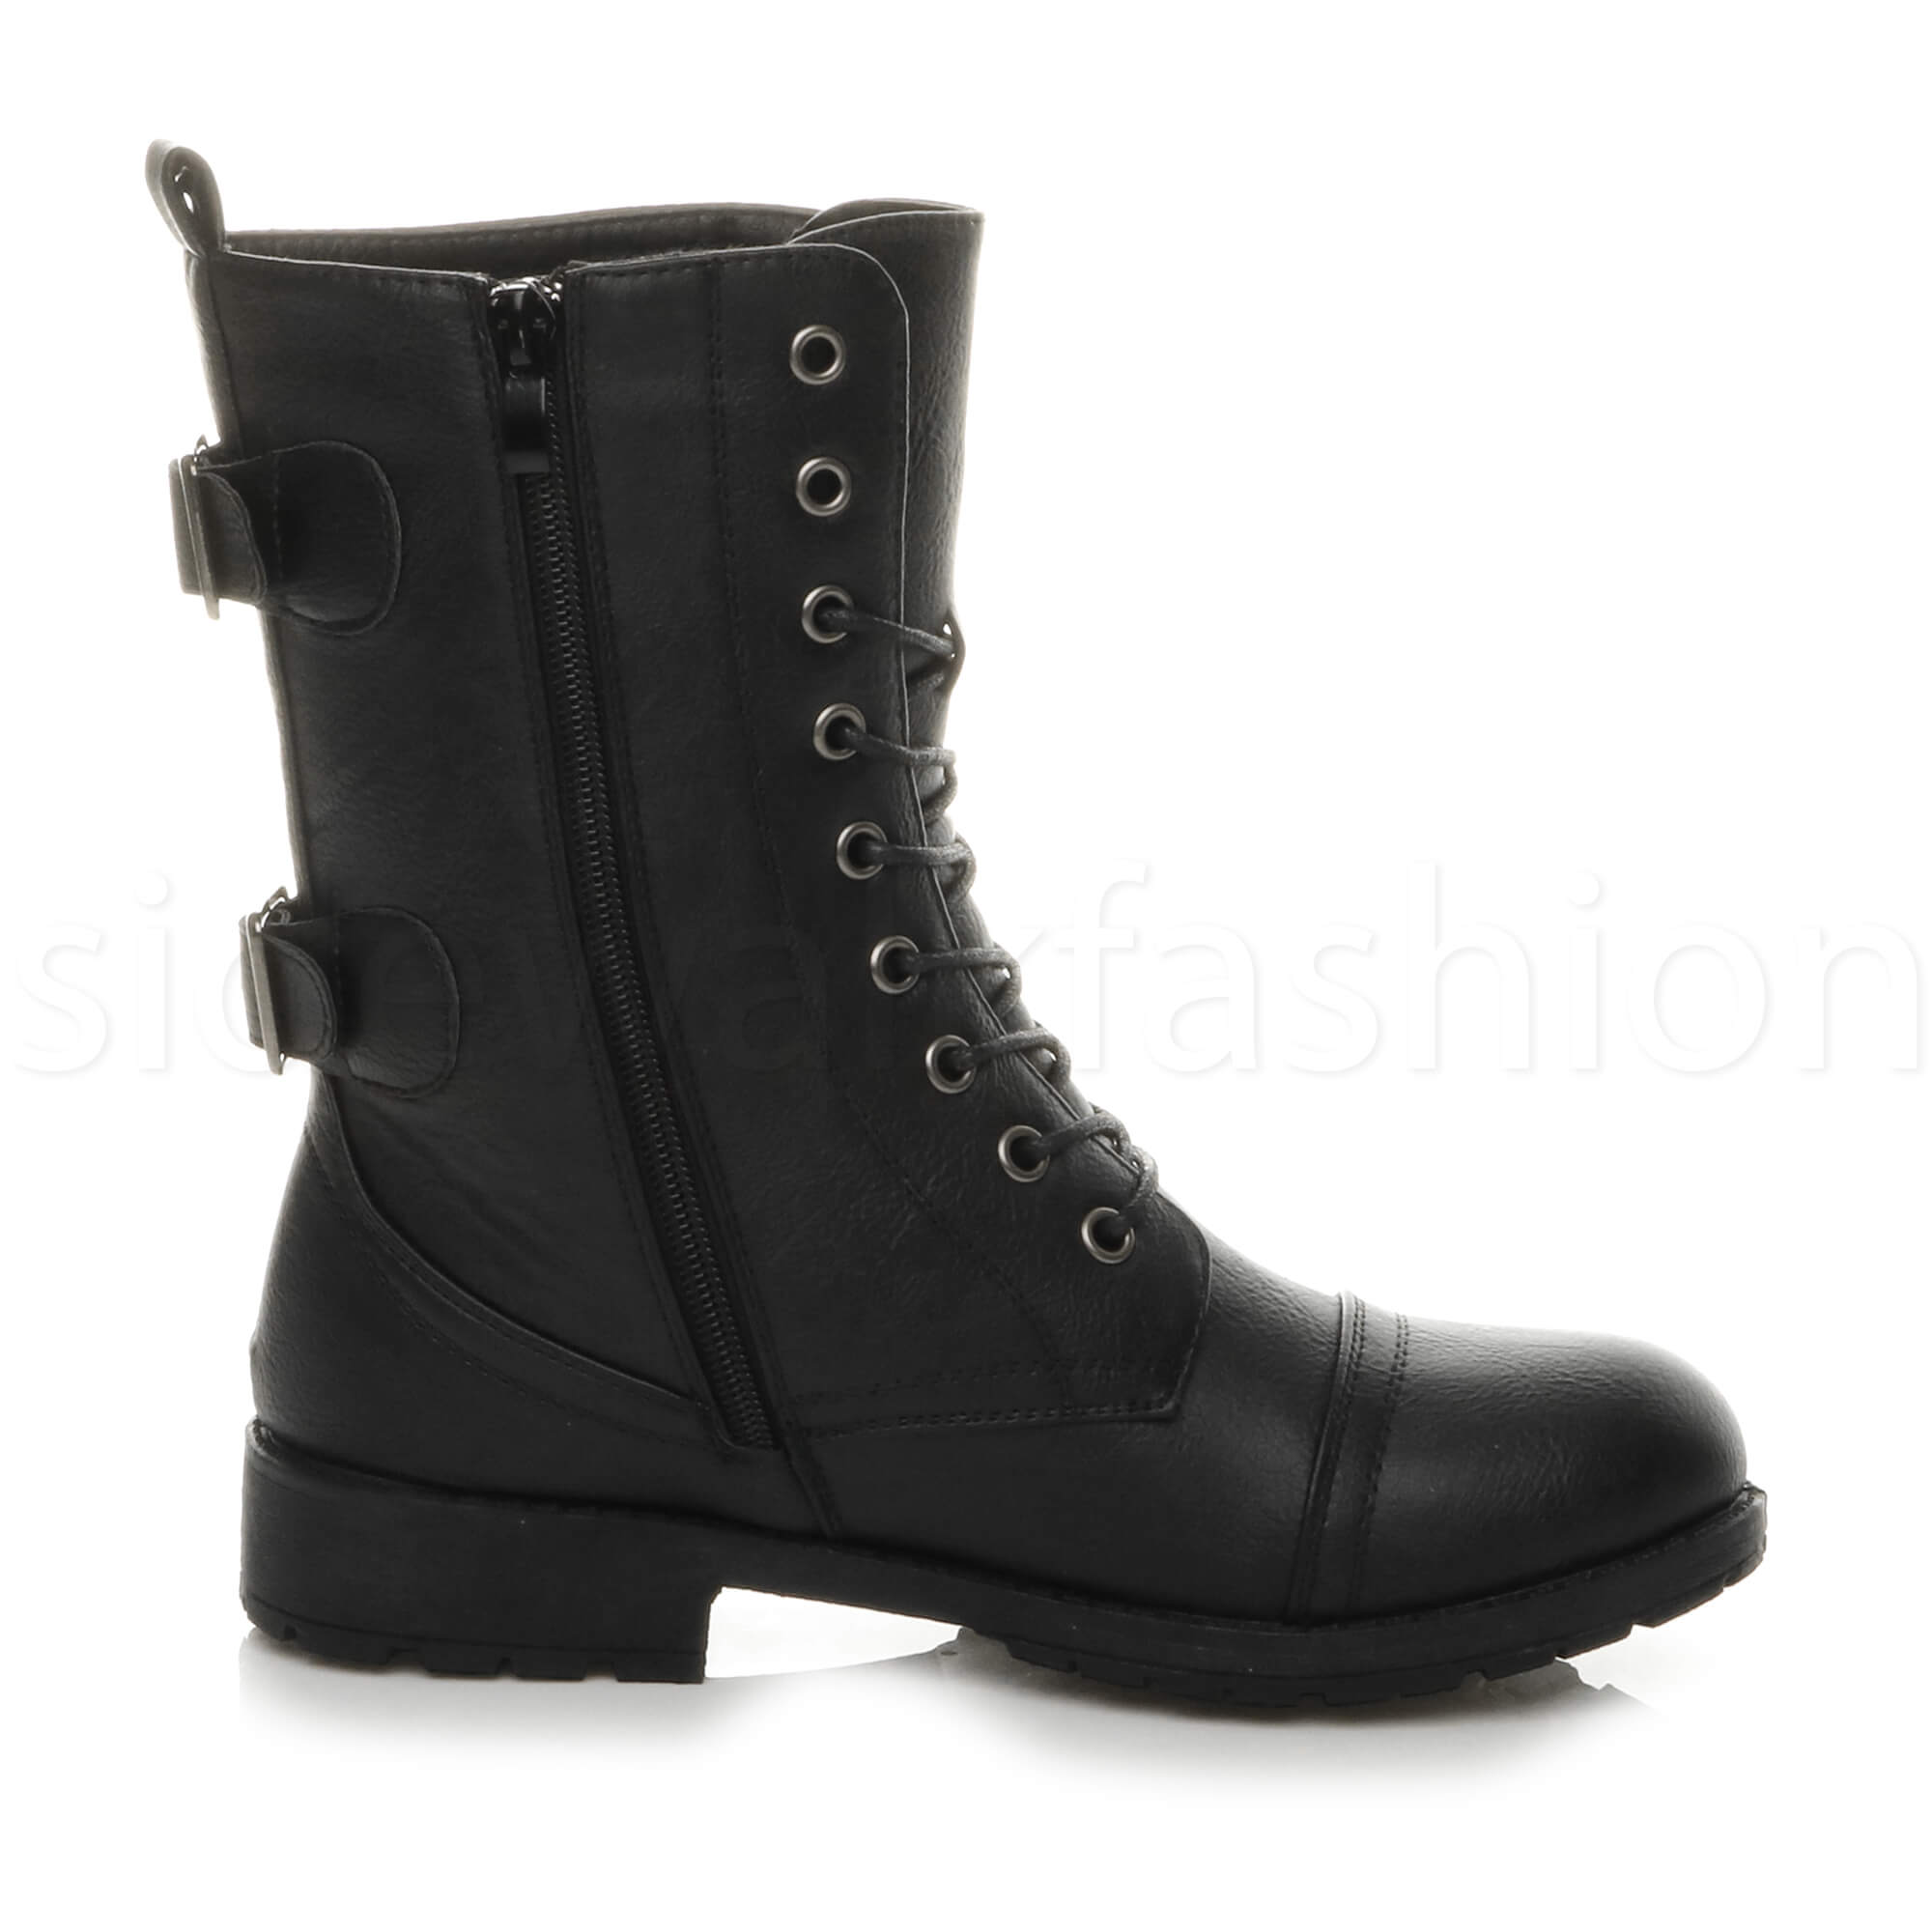 Womens-ladies-low-heel-flat-lace-up-zip-combat-biker-military-ankle-boots-size thumbnail 4